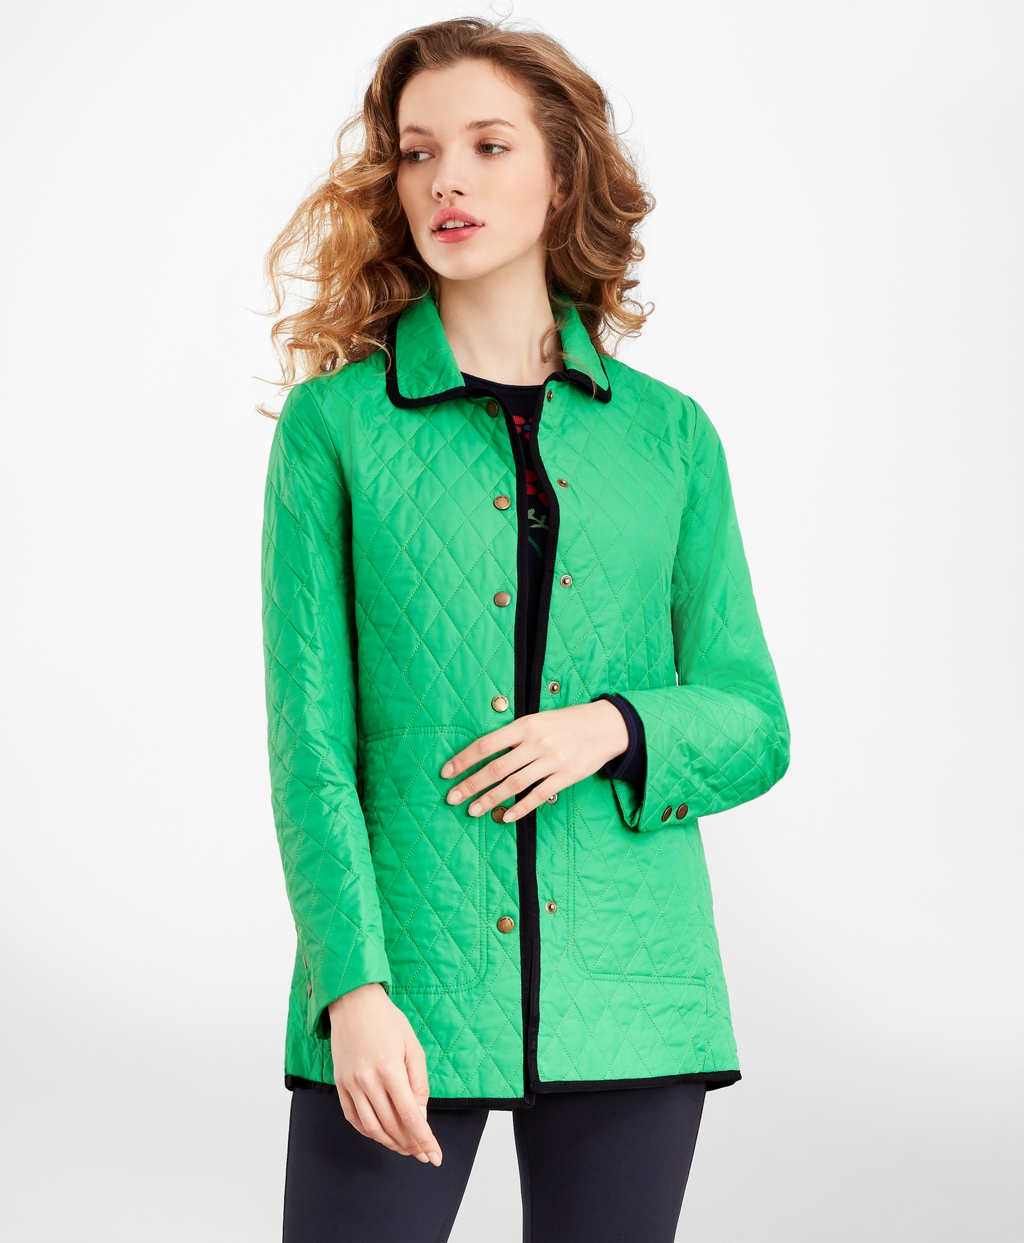 1960s Coats and Jackets Brooks Brothers Womens Water-Repellent Quilted Car Coat $298.00 AT vintagedancer.com